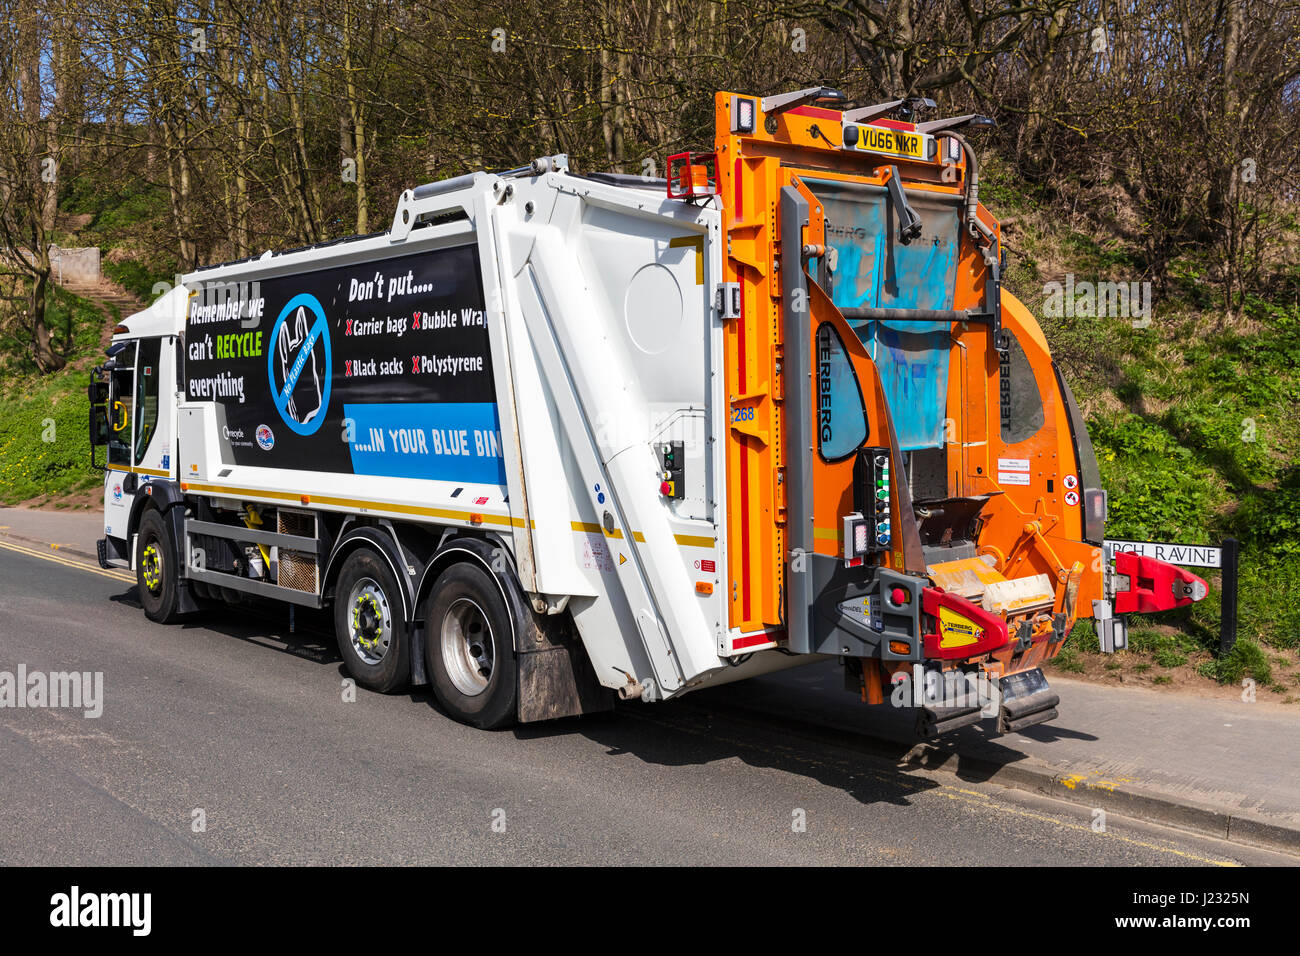 dustbin lorry waste collection service UK council service UK England truck disposal of home waste Stock Photo